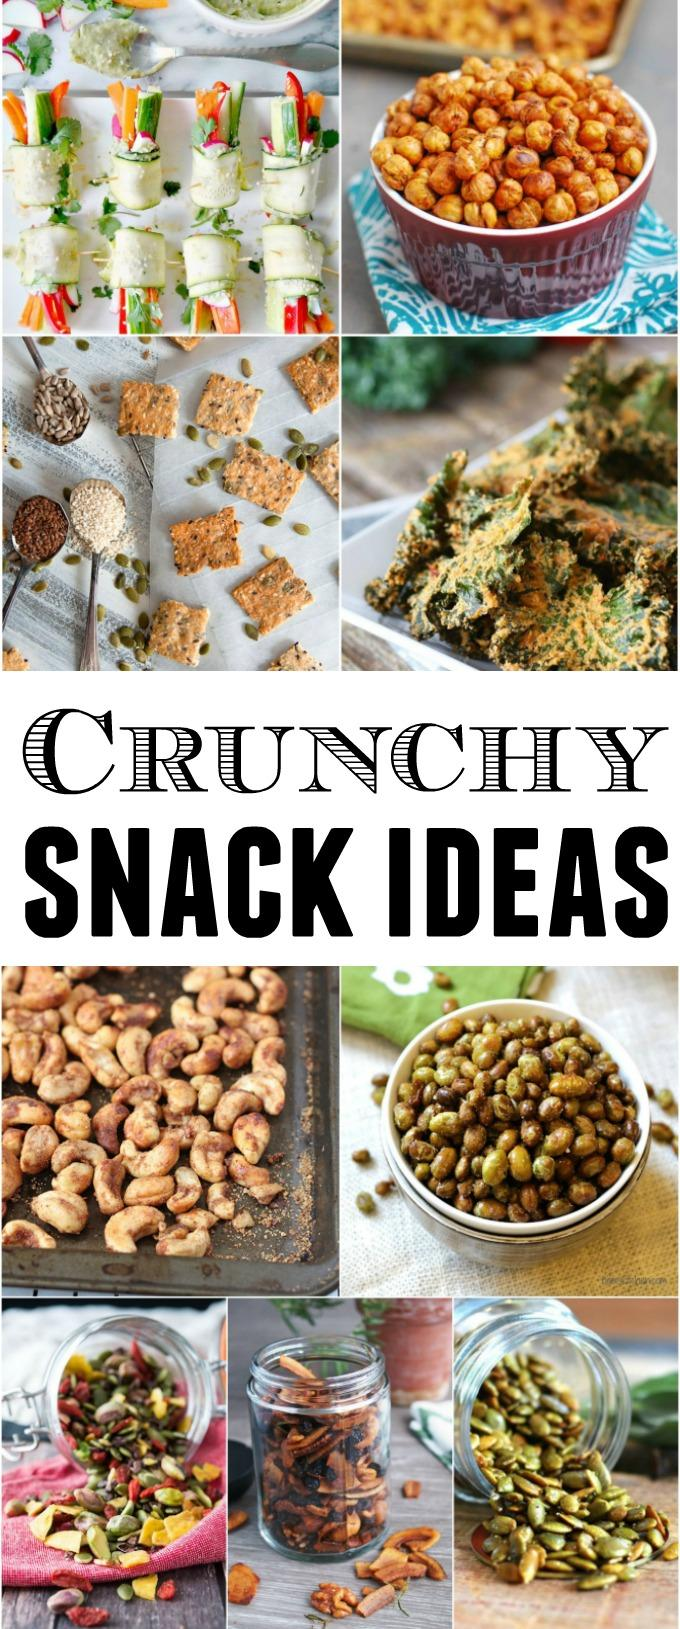 These 9 Healthy Crunchy Snacks are a helpful way to power through the afternoon slump. The recipes are packed with protein and healthy fats and are easy to eat on-the-go!